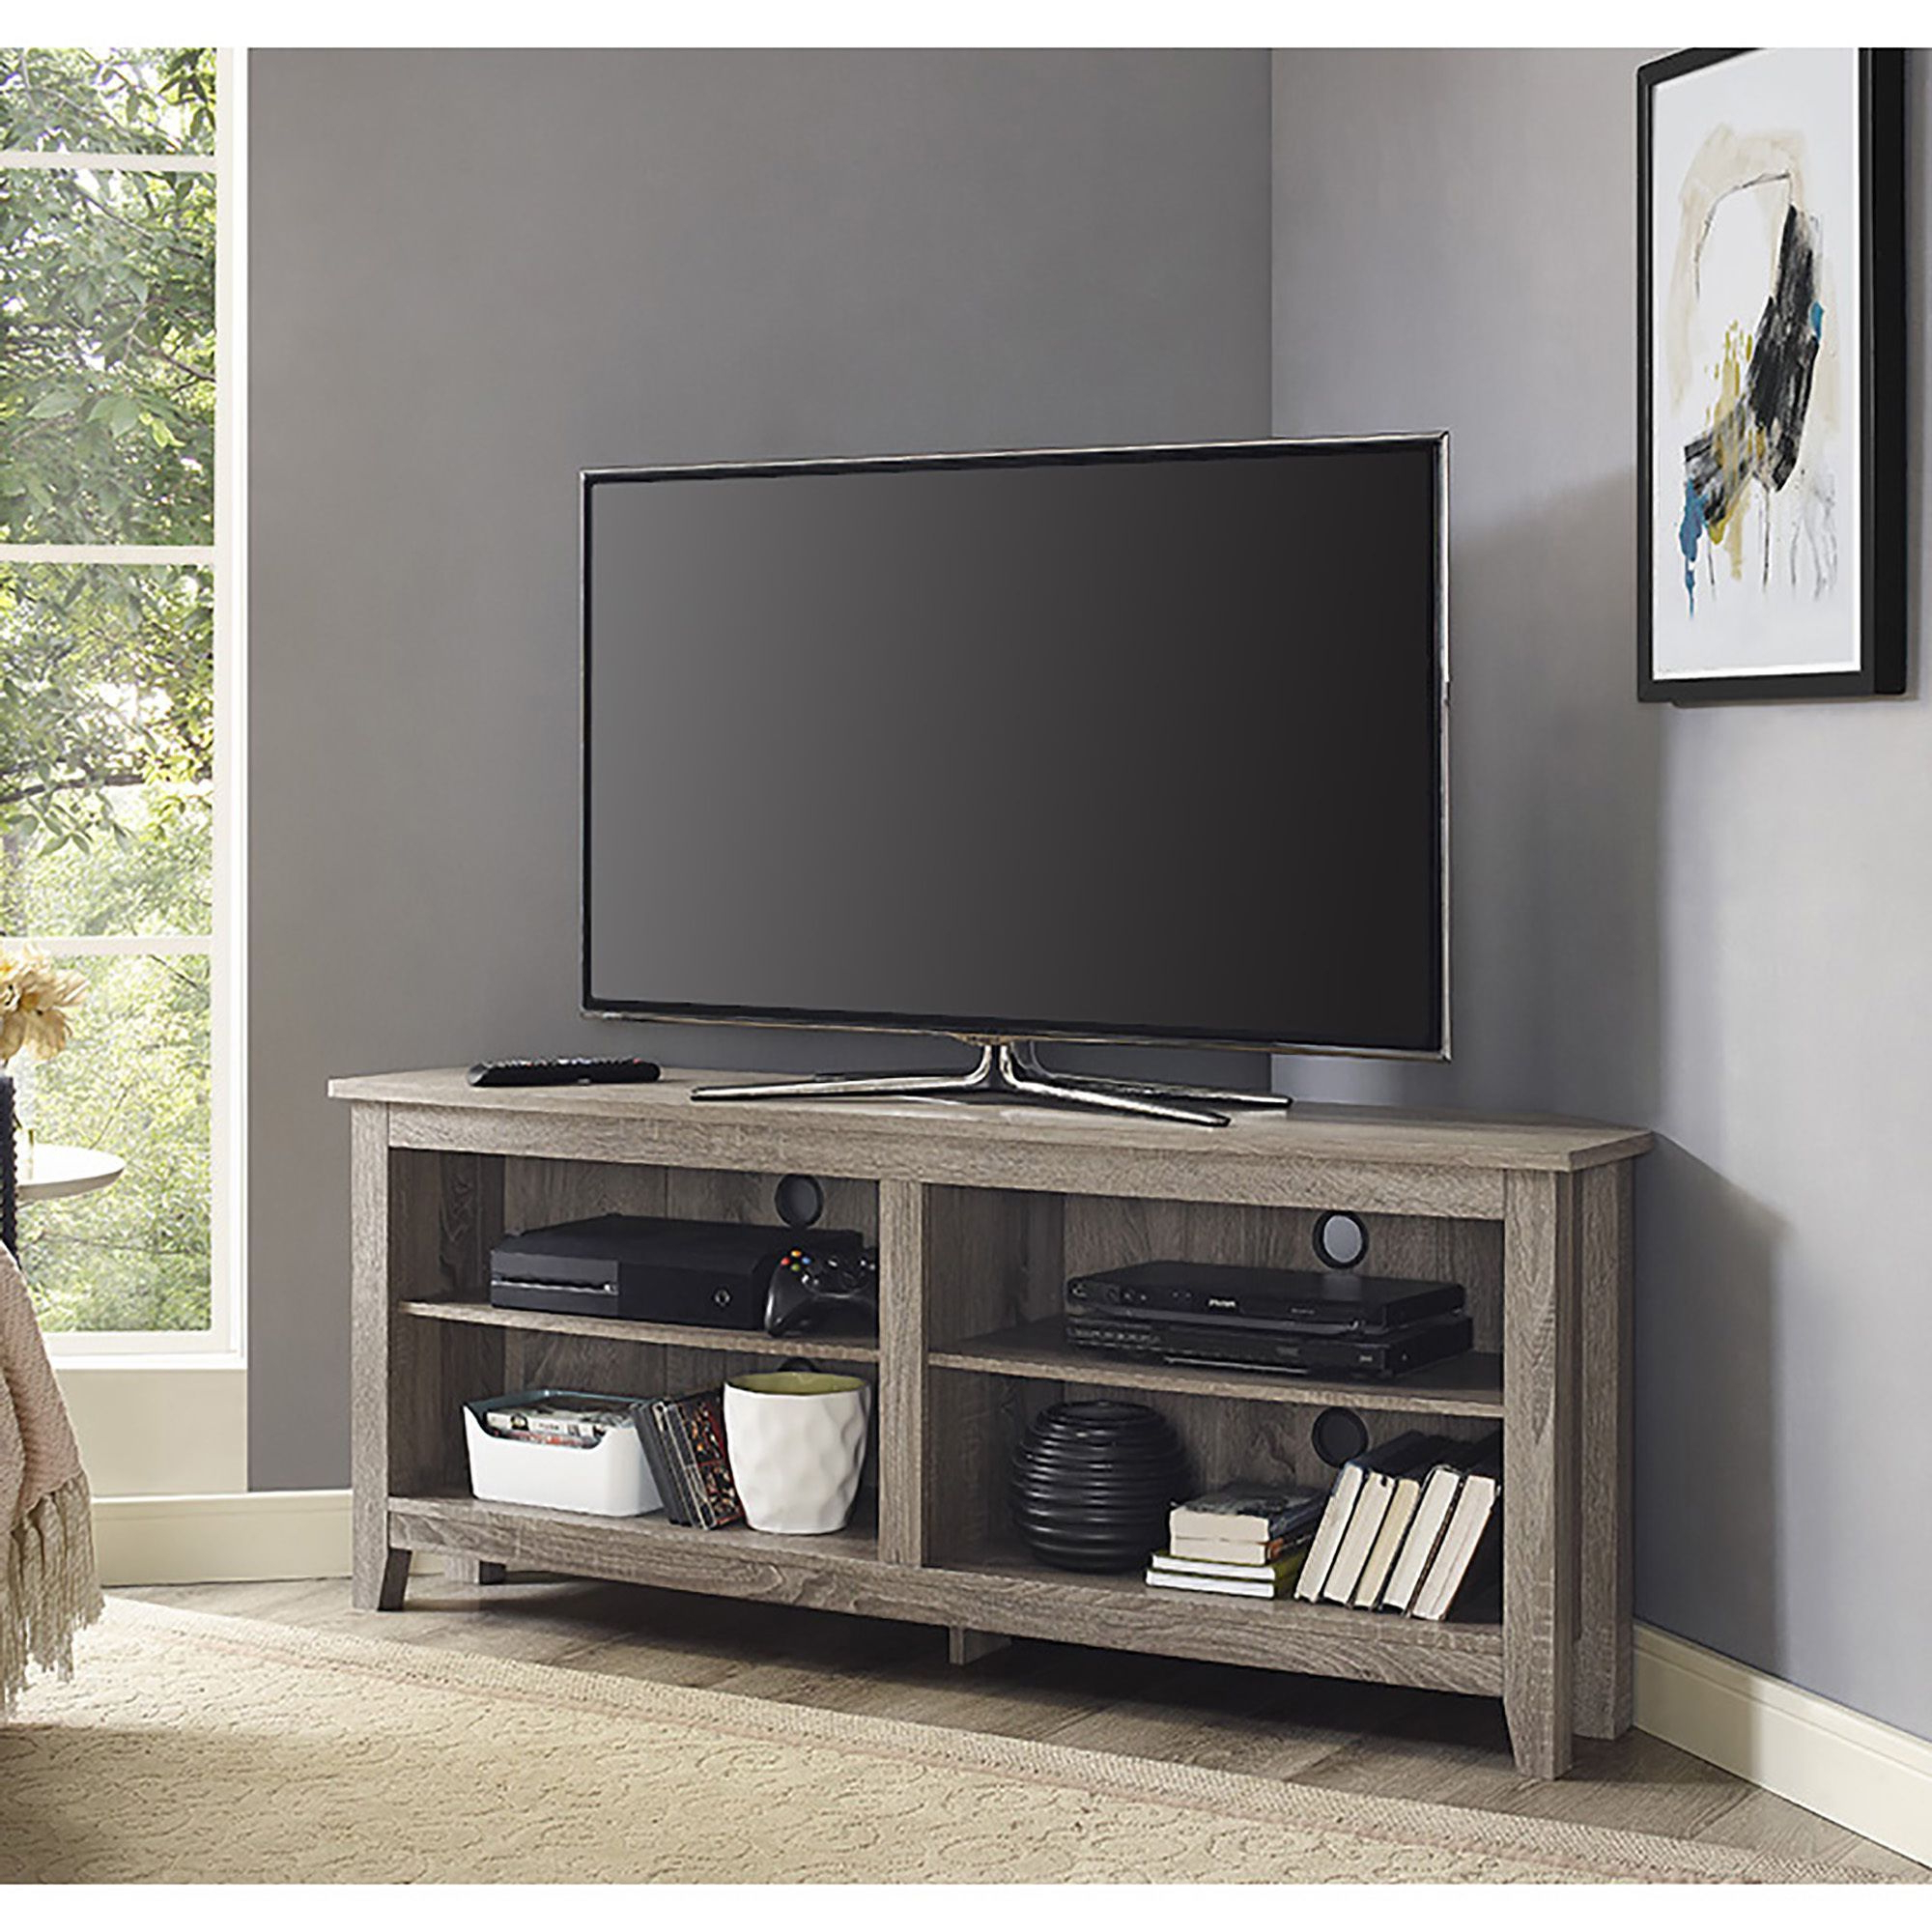 24 Inch Corner Tv Stands Intended For Well Known Display Your Tv In Style With This Corner Wood Media Stand. Its (Gallery 3 of 20)